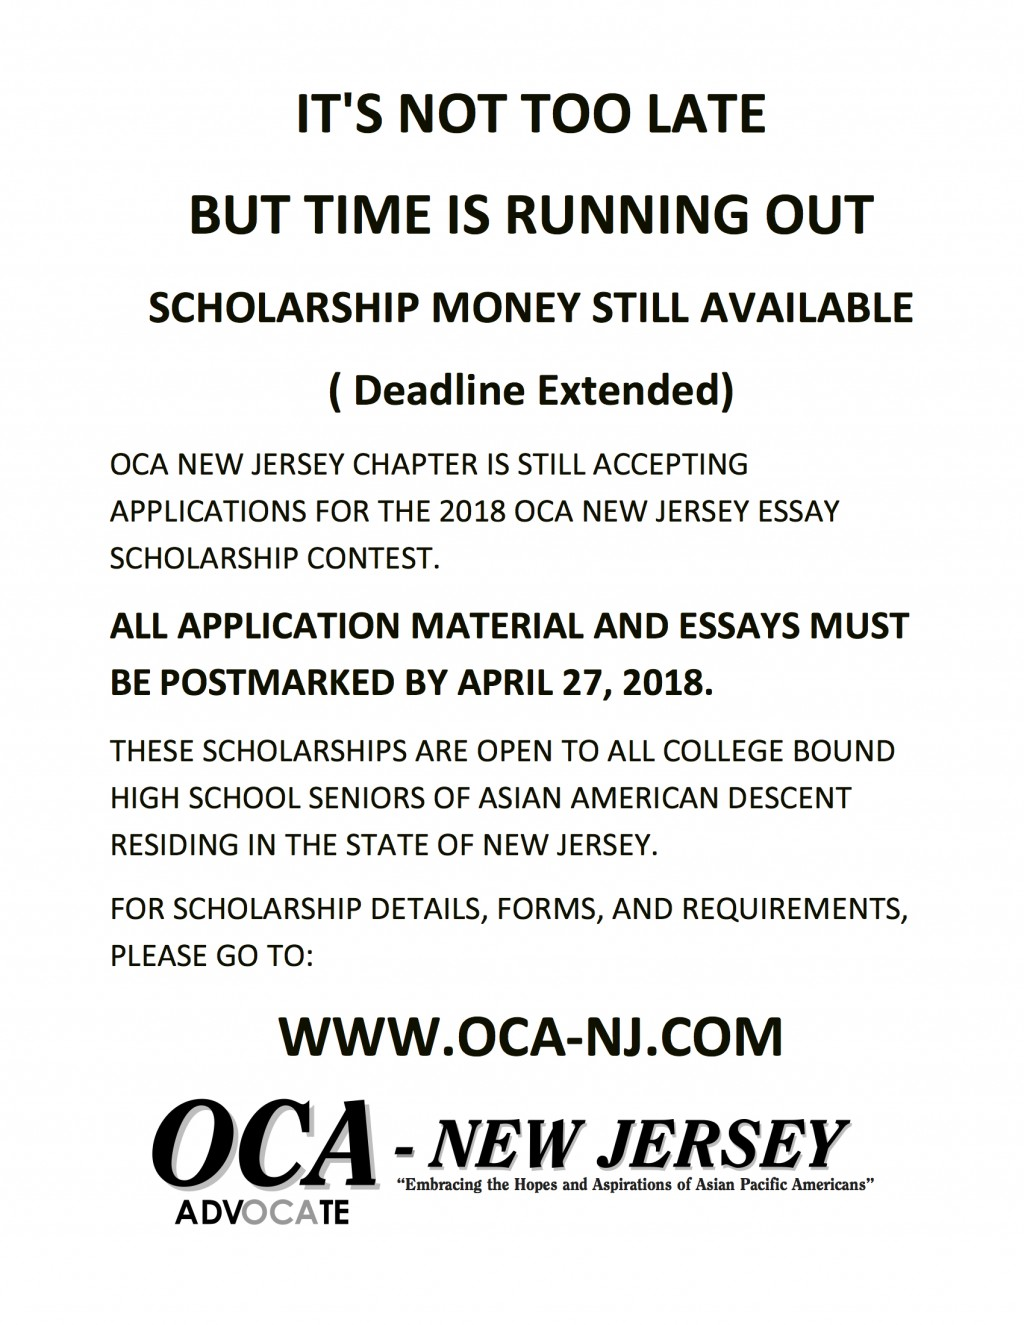 014 Essay Example Scholarships Entended Deadline Oca Nj Shocking 2018 For International Students Examples Canada 2019 Large